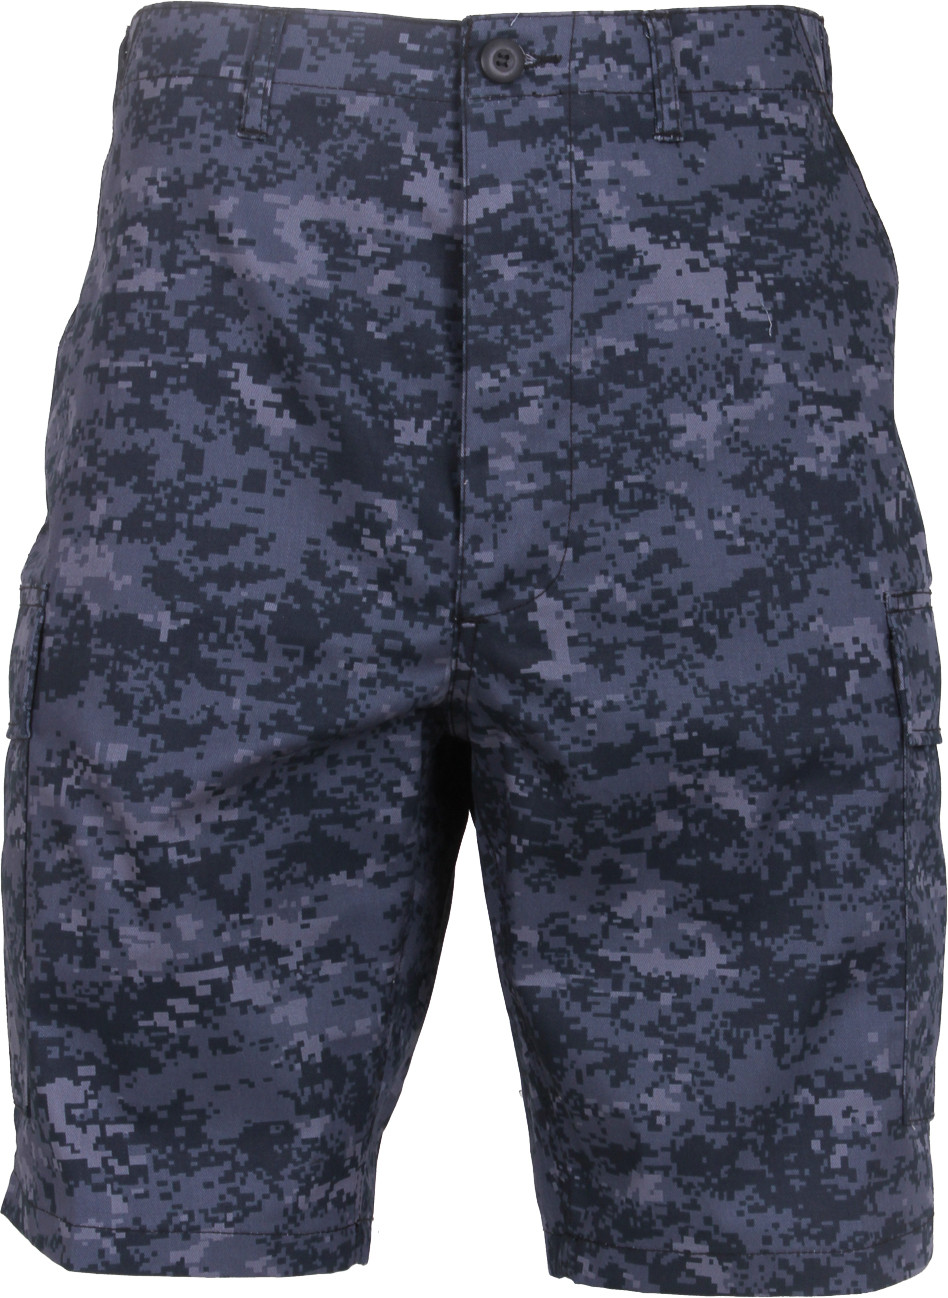 Midnight Digital Camouflage Combat Military Cargo BDU Shorts c8aad29150a